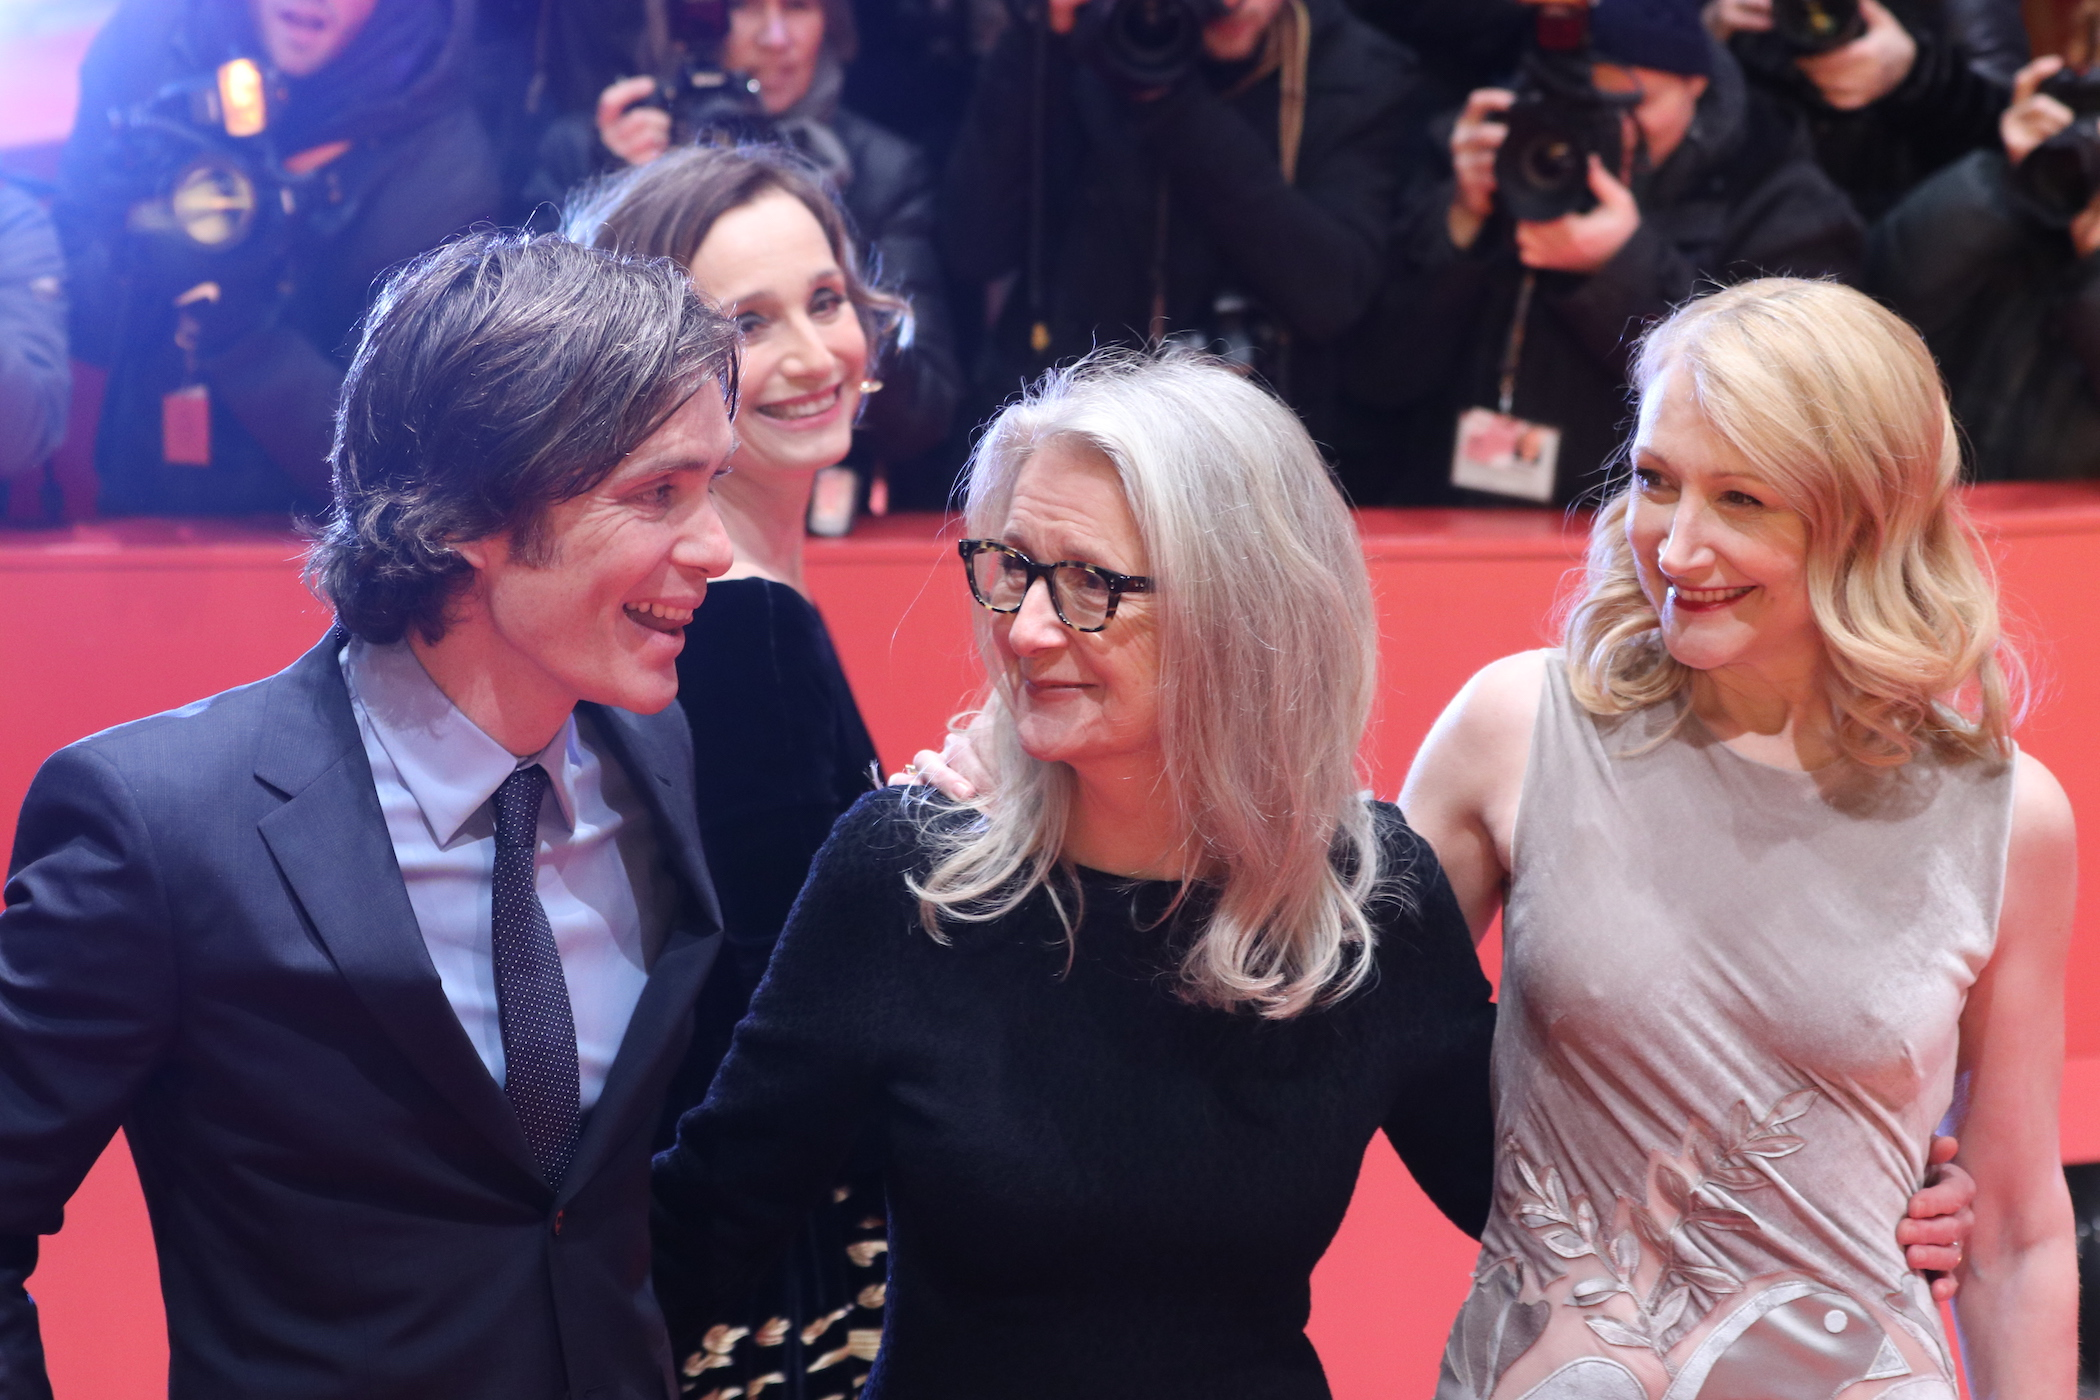 Berlino 2017: Patricia Clarkson, Cillian Murphy e Sally Potter sul red carpet di The party